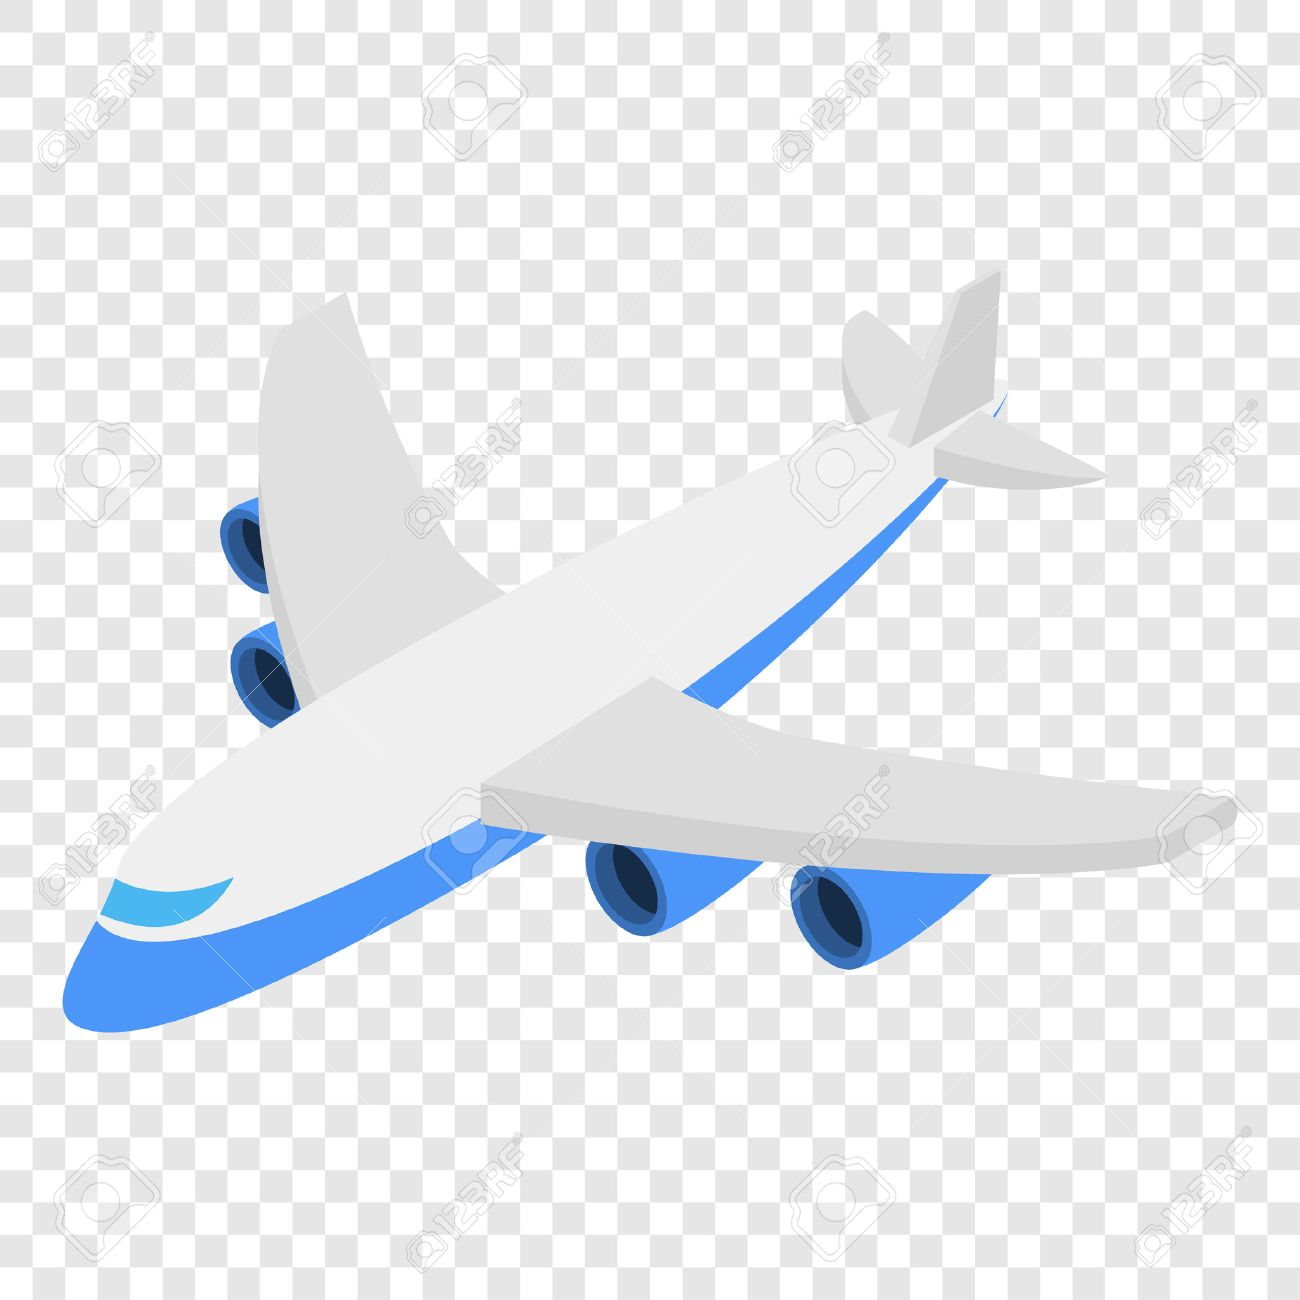 Plane Isometric 3d Icon On Transparent Background Royalty Free